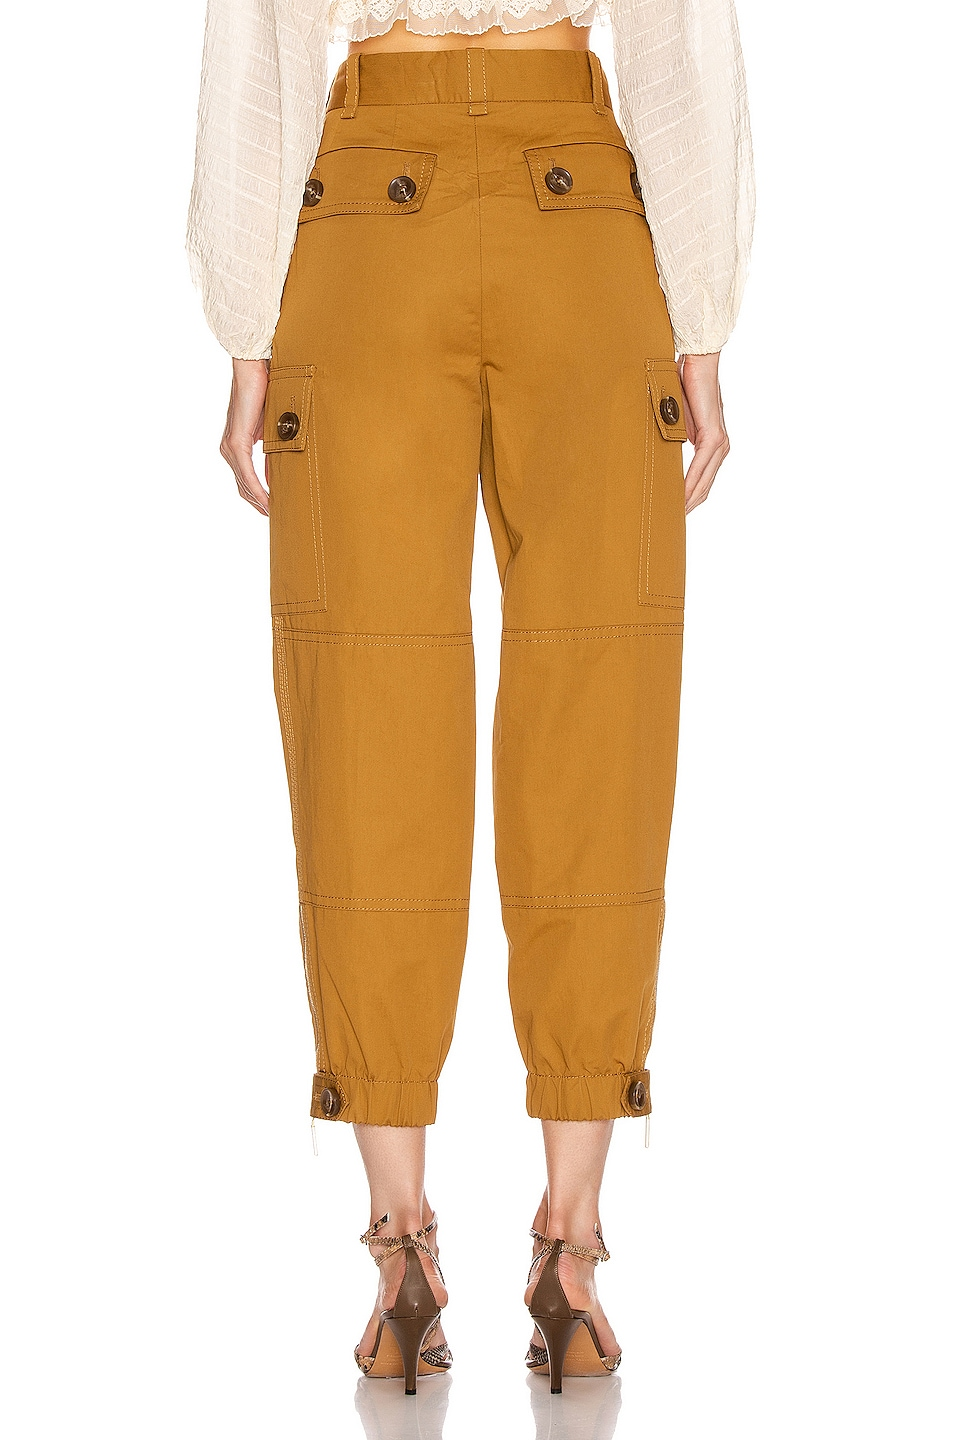 Image 3 of Zimmermann Espionage Army Pant in Ocra